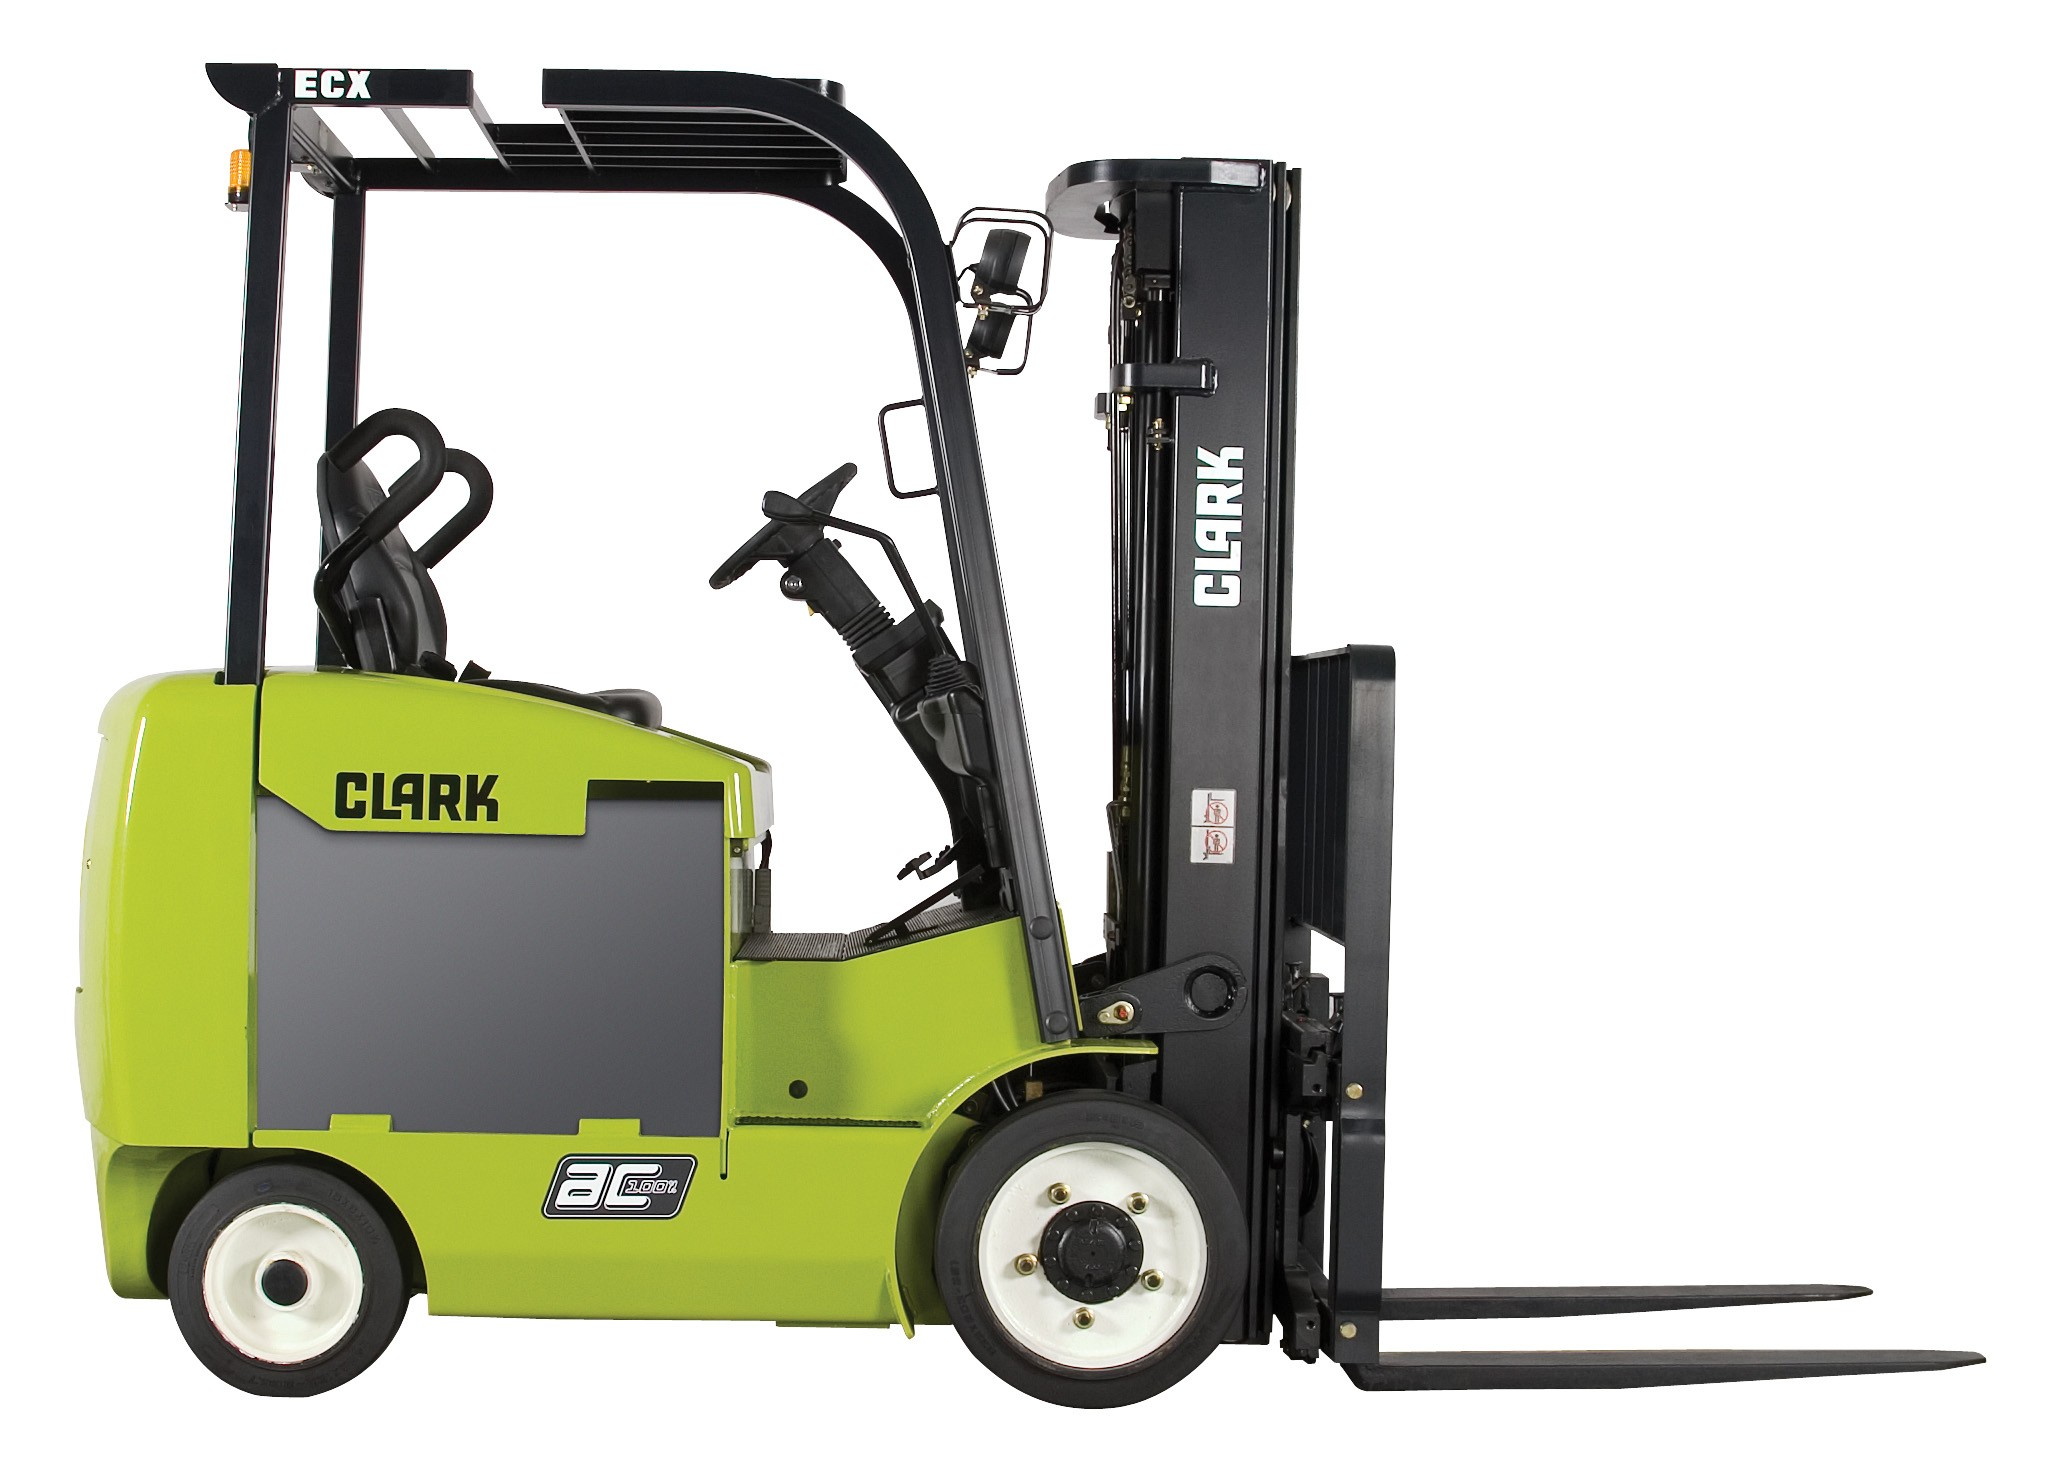 Clark forklift photo - 6